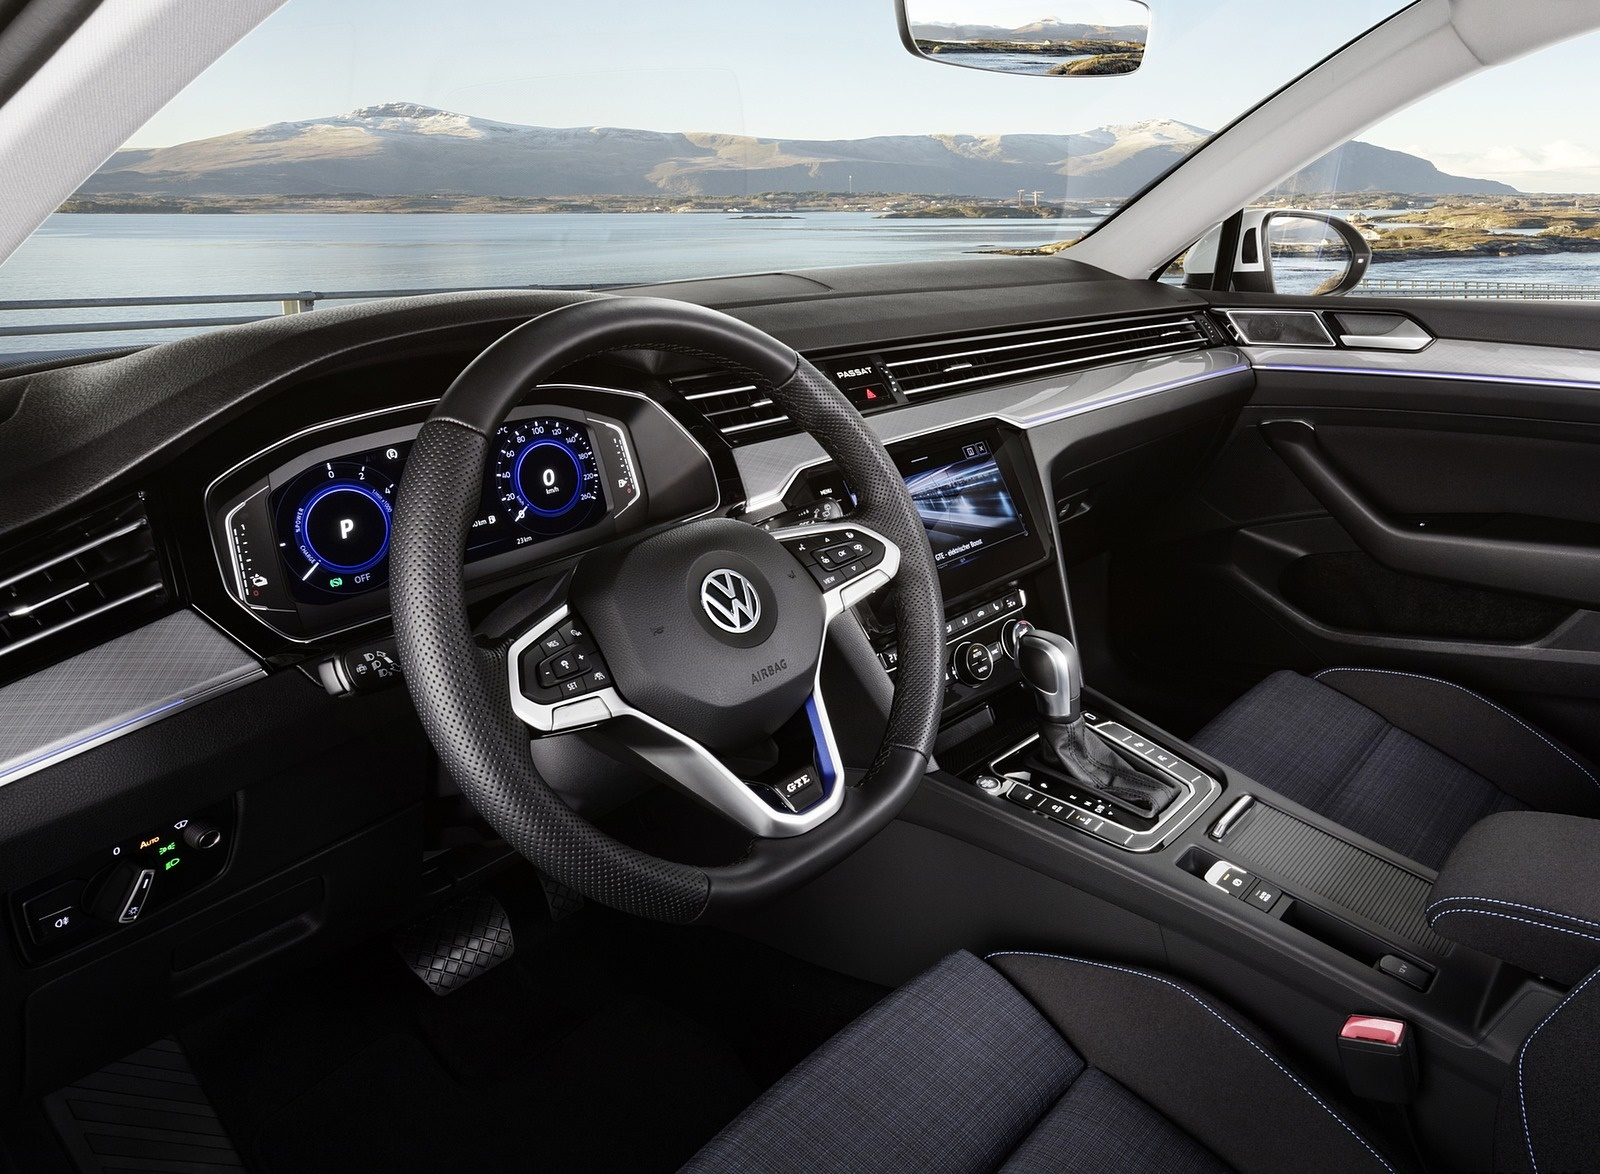 2020 Volkswagen Passat GTE (EU-Spec) Interior Wallpapers (13)